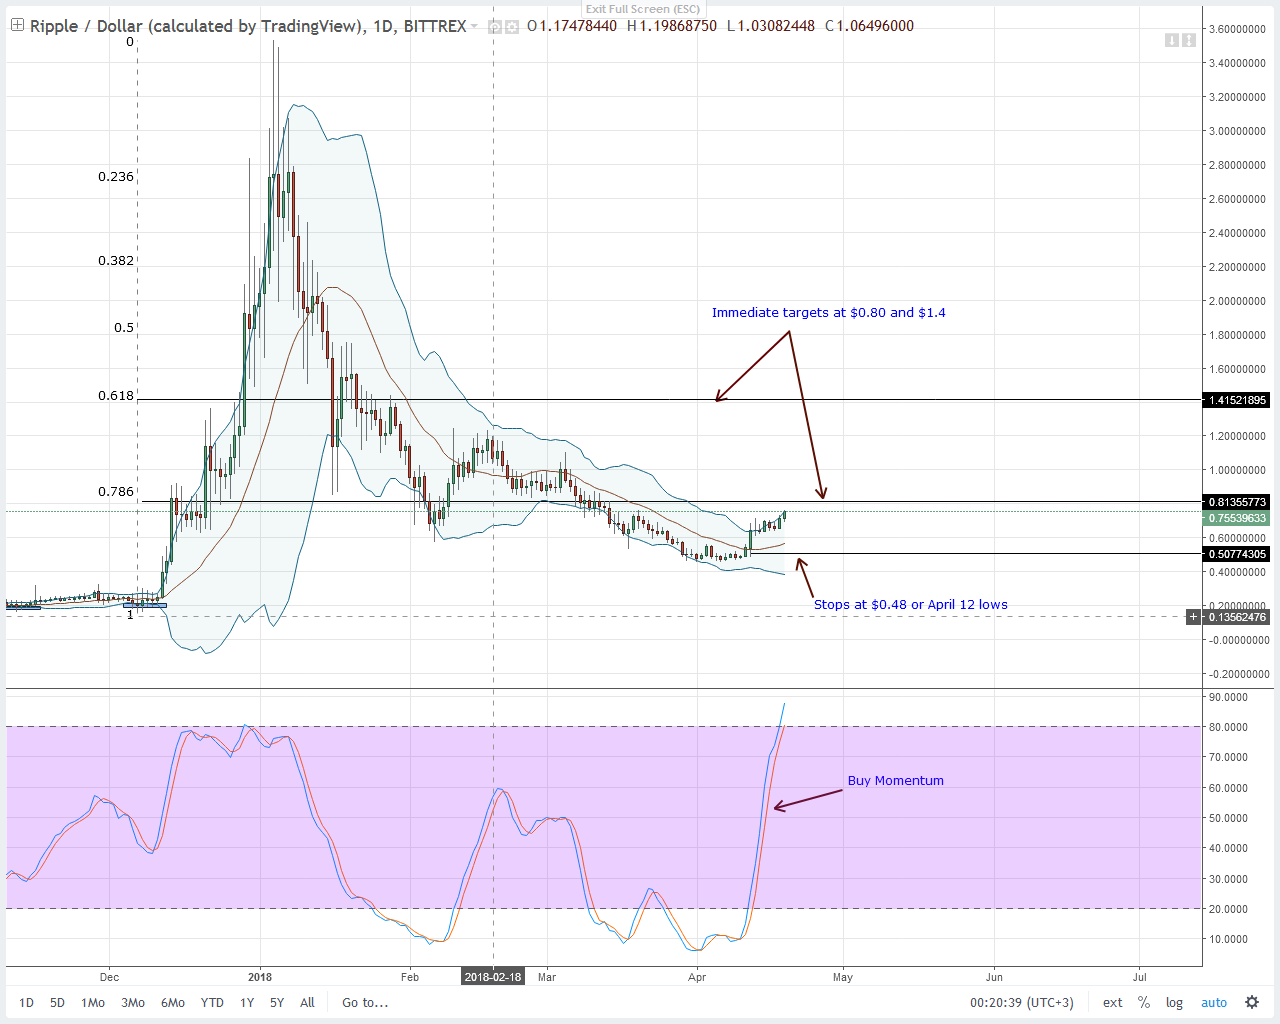 XRPUSD Bittrex Daily Chart-April 20, 2018